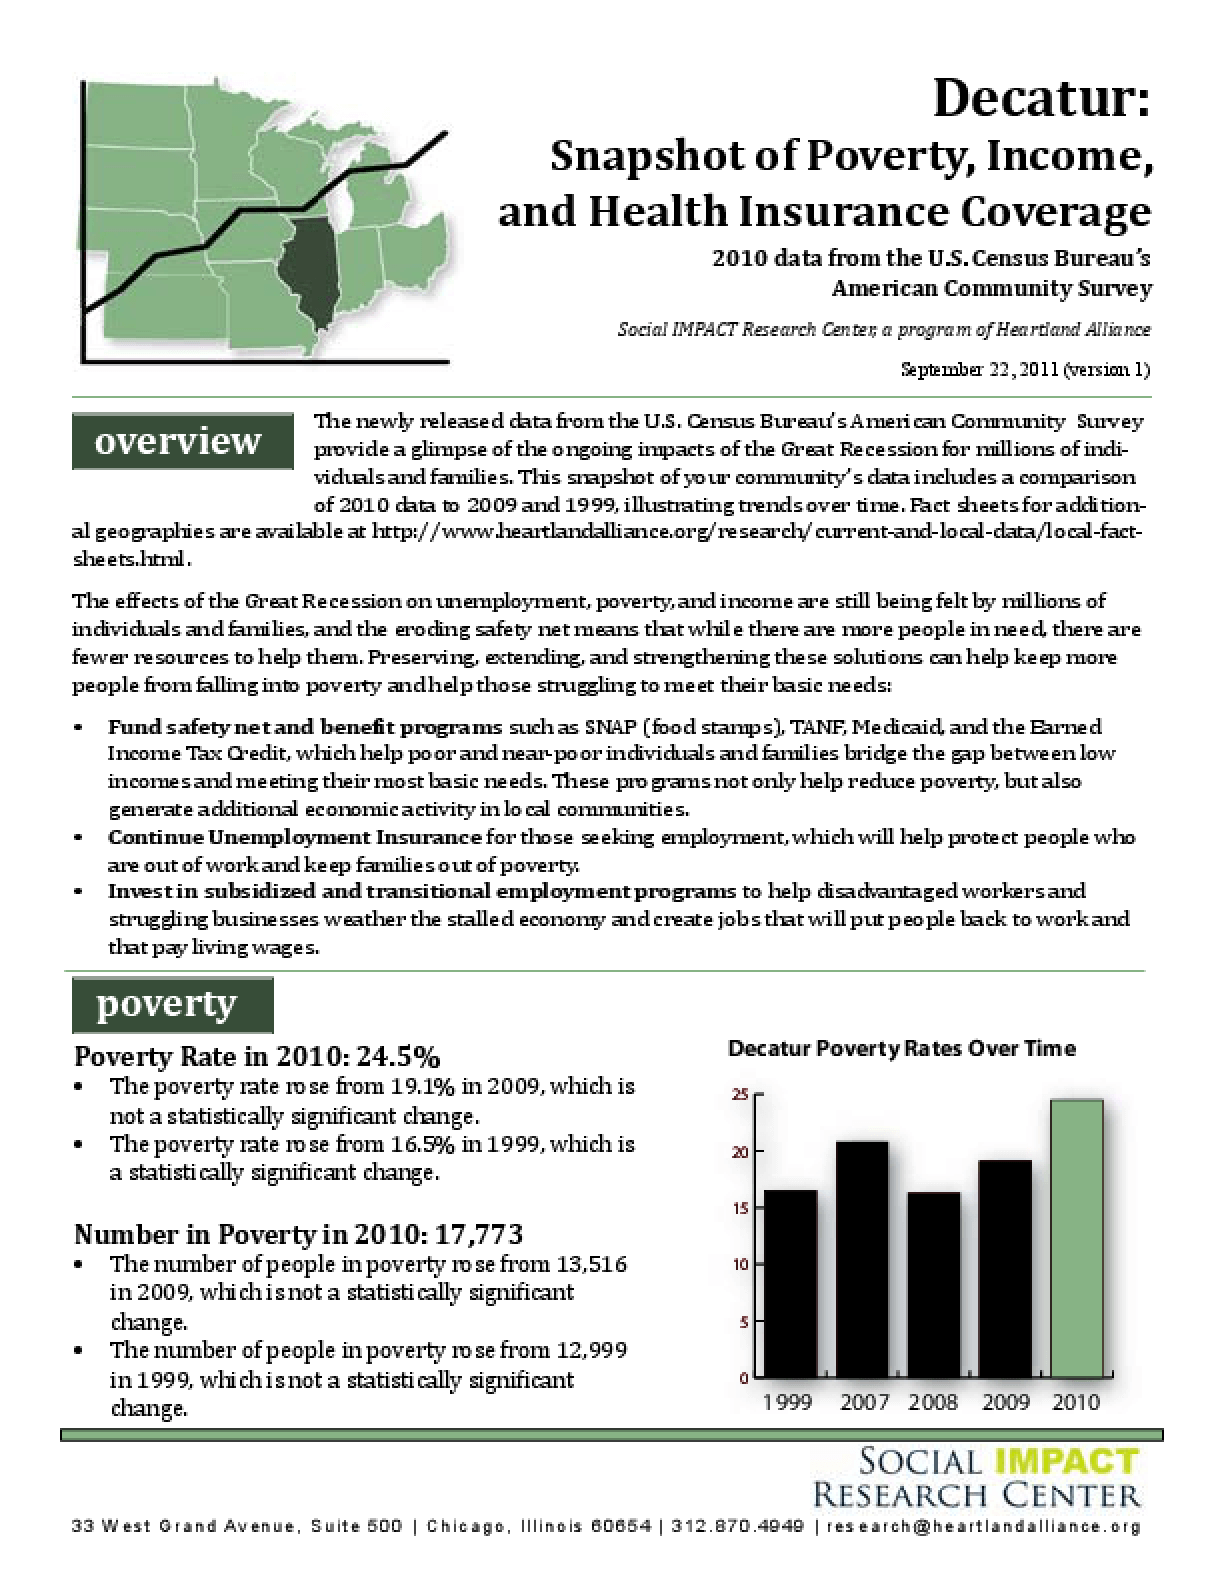 Decatur: Snapshot of Poverty, Income, and Health Insurance Coverage